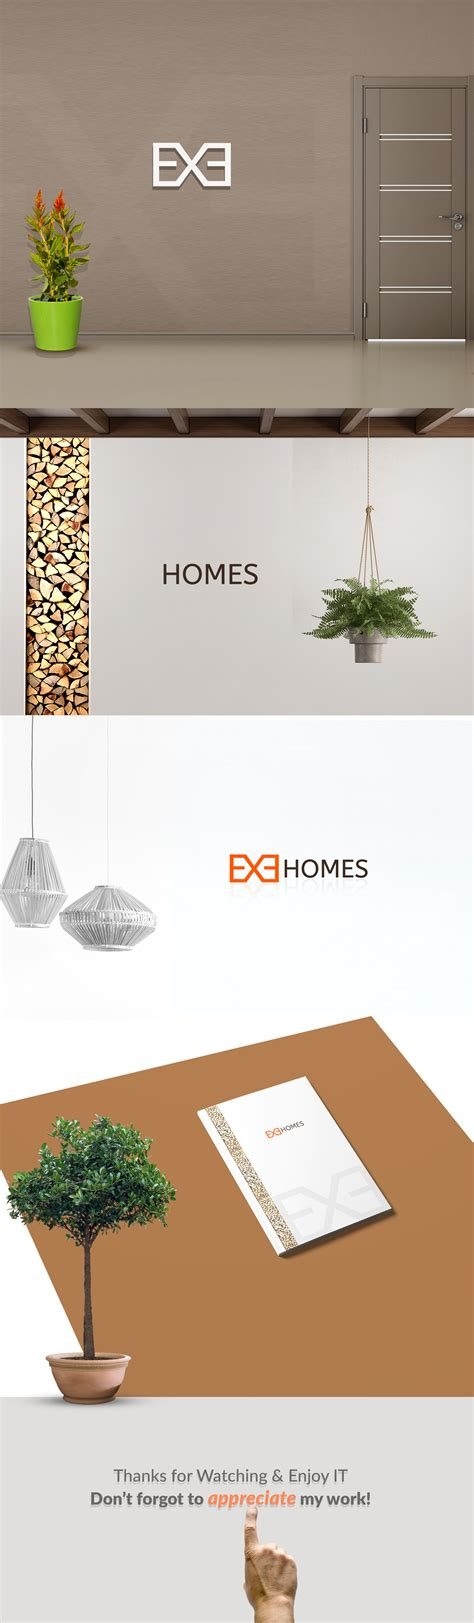 exe homes logo home logo home